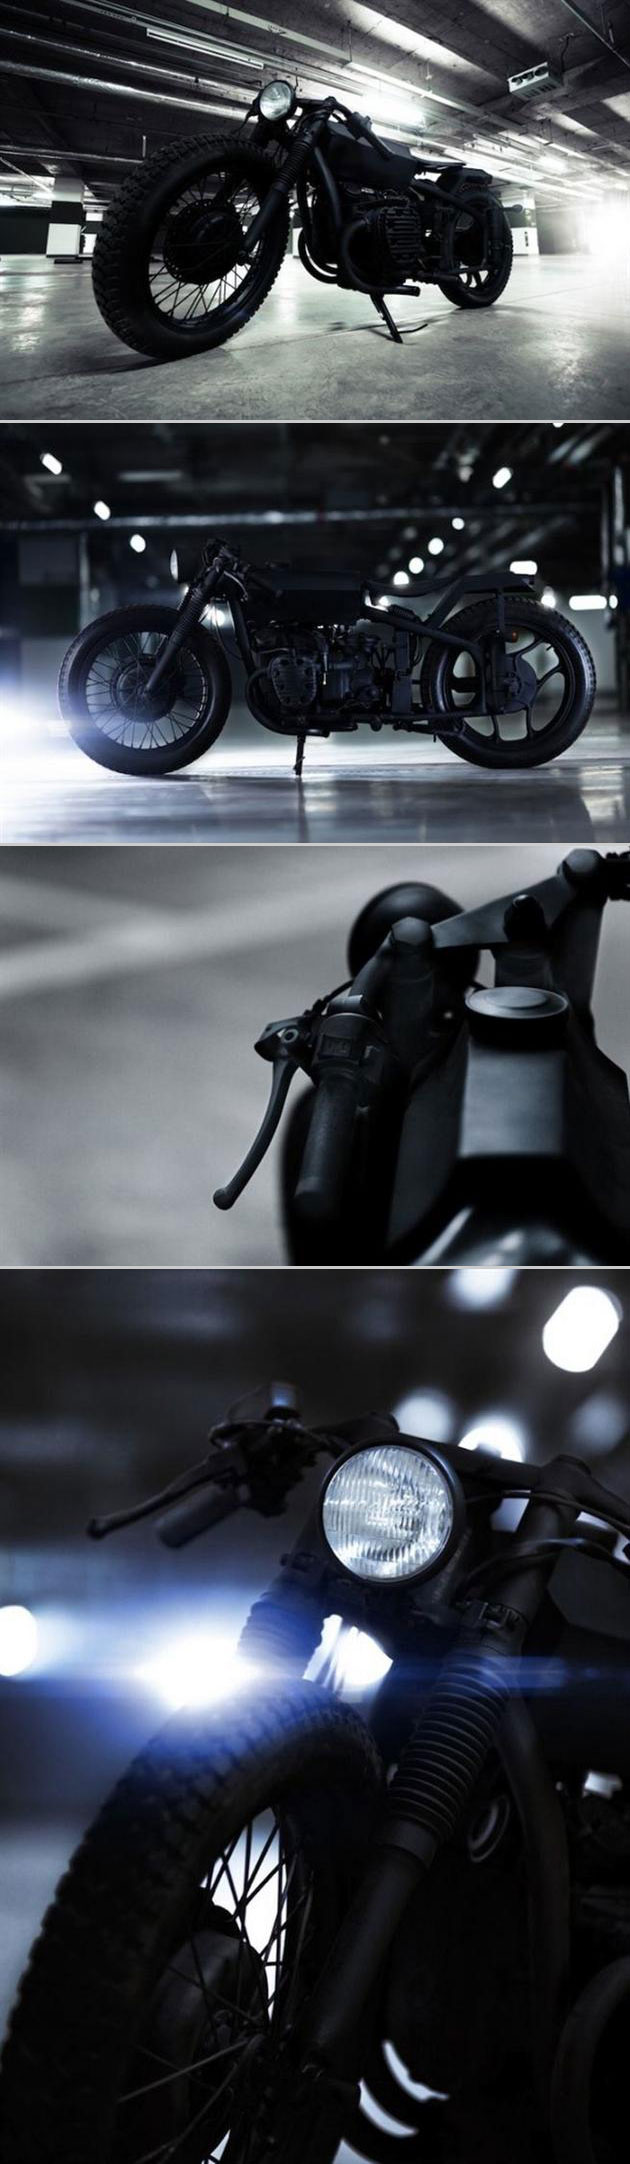 Stealth Nero Motorcycle